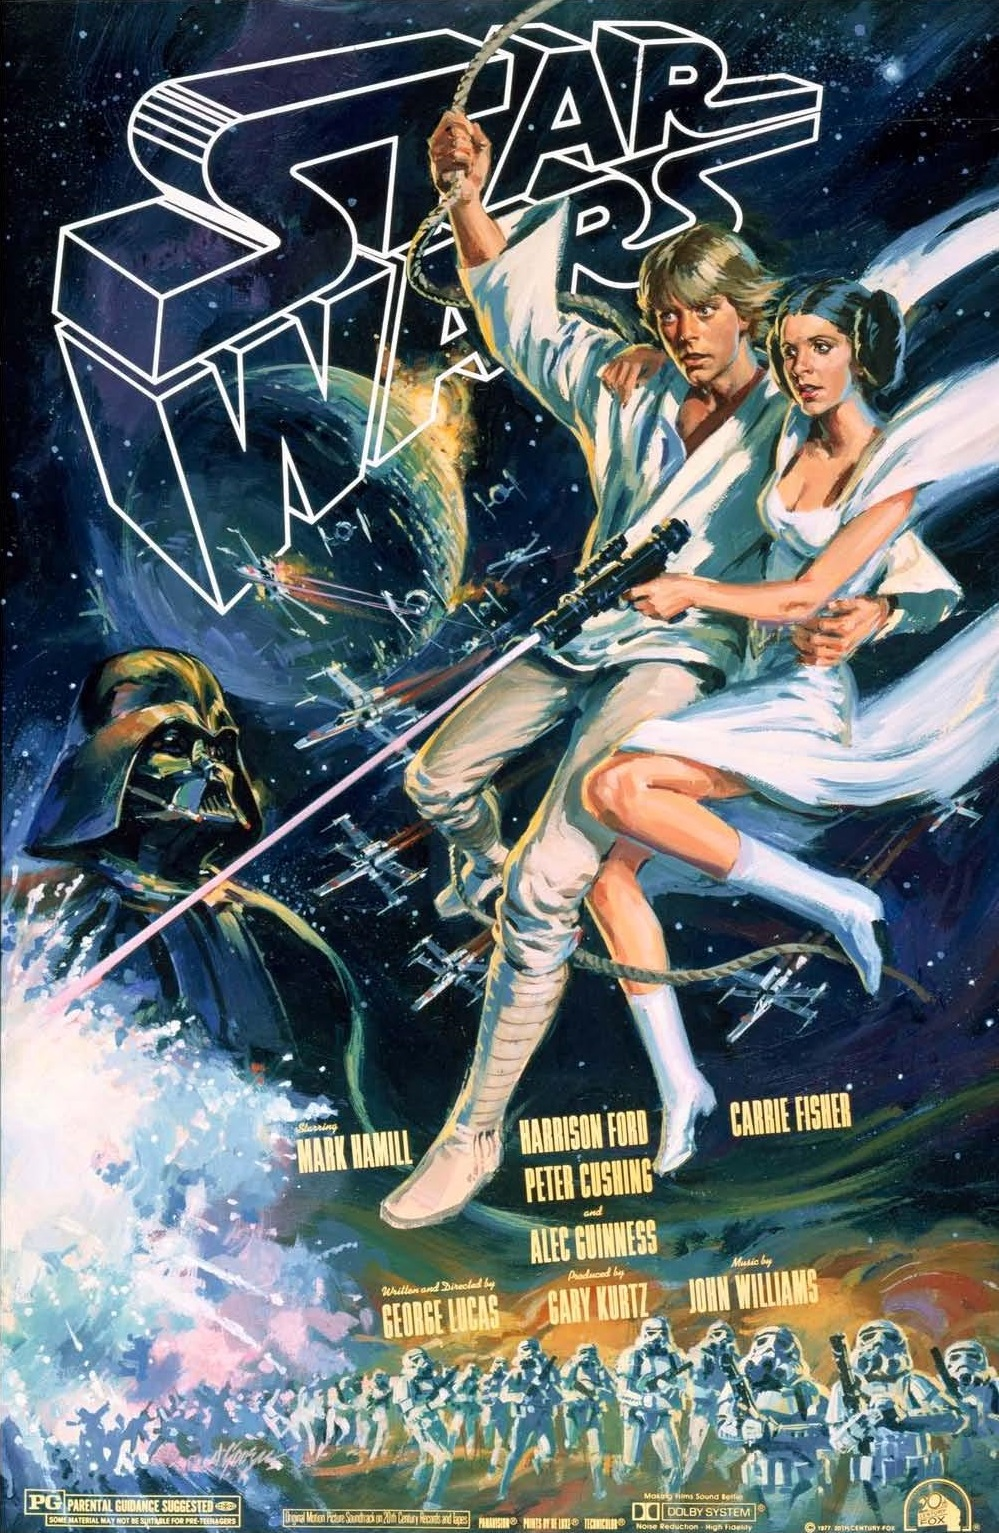 foreign star wars movie posters as well